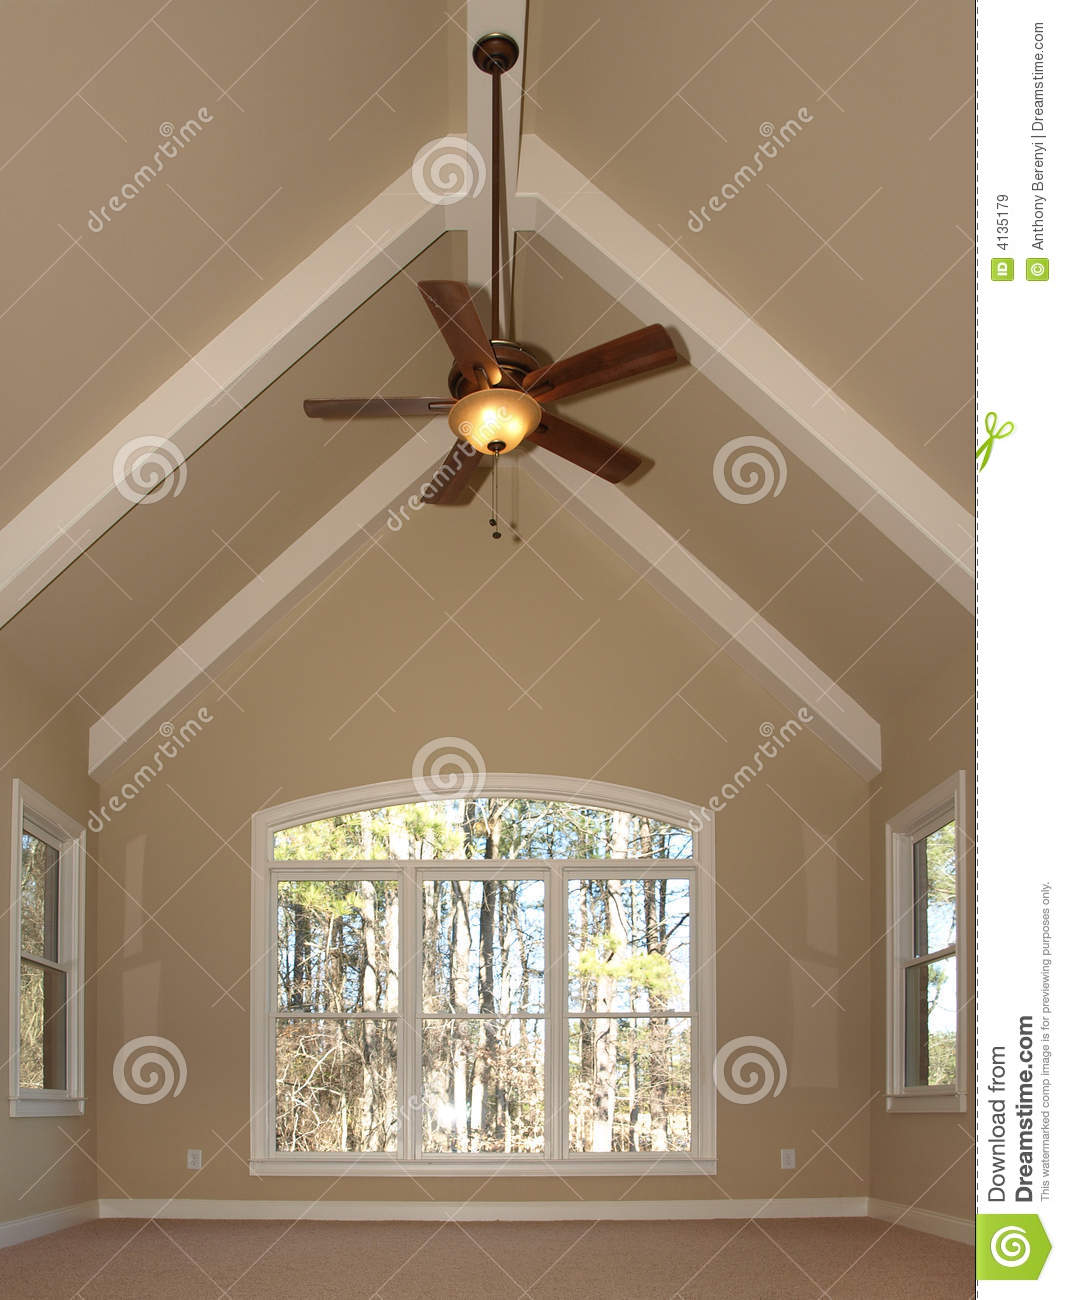 Luxury Room With Vaulted Ceiling Royalty Free Stock Images ...